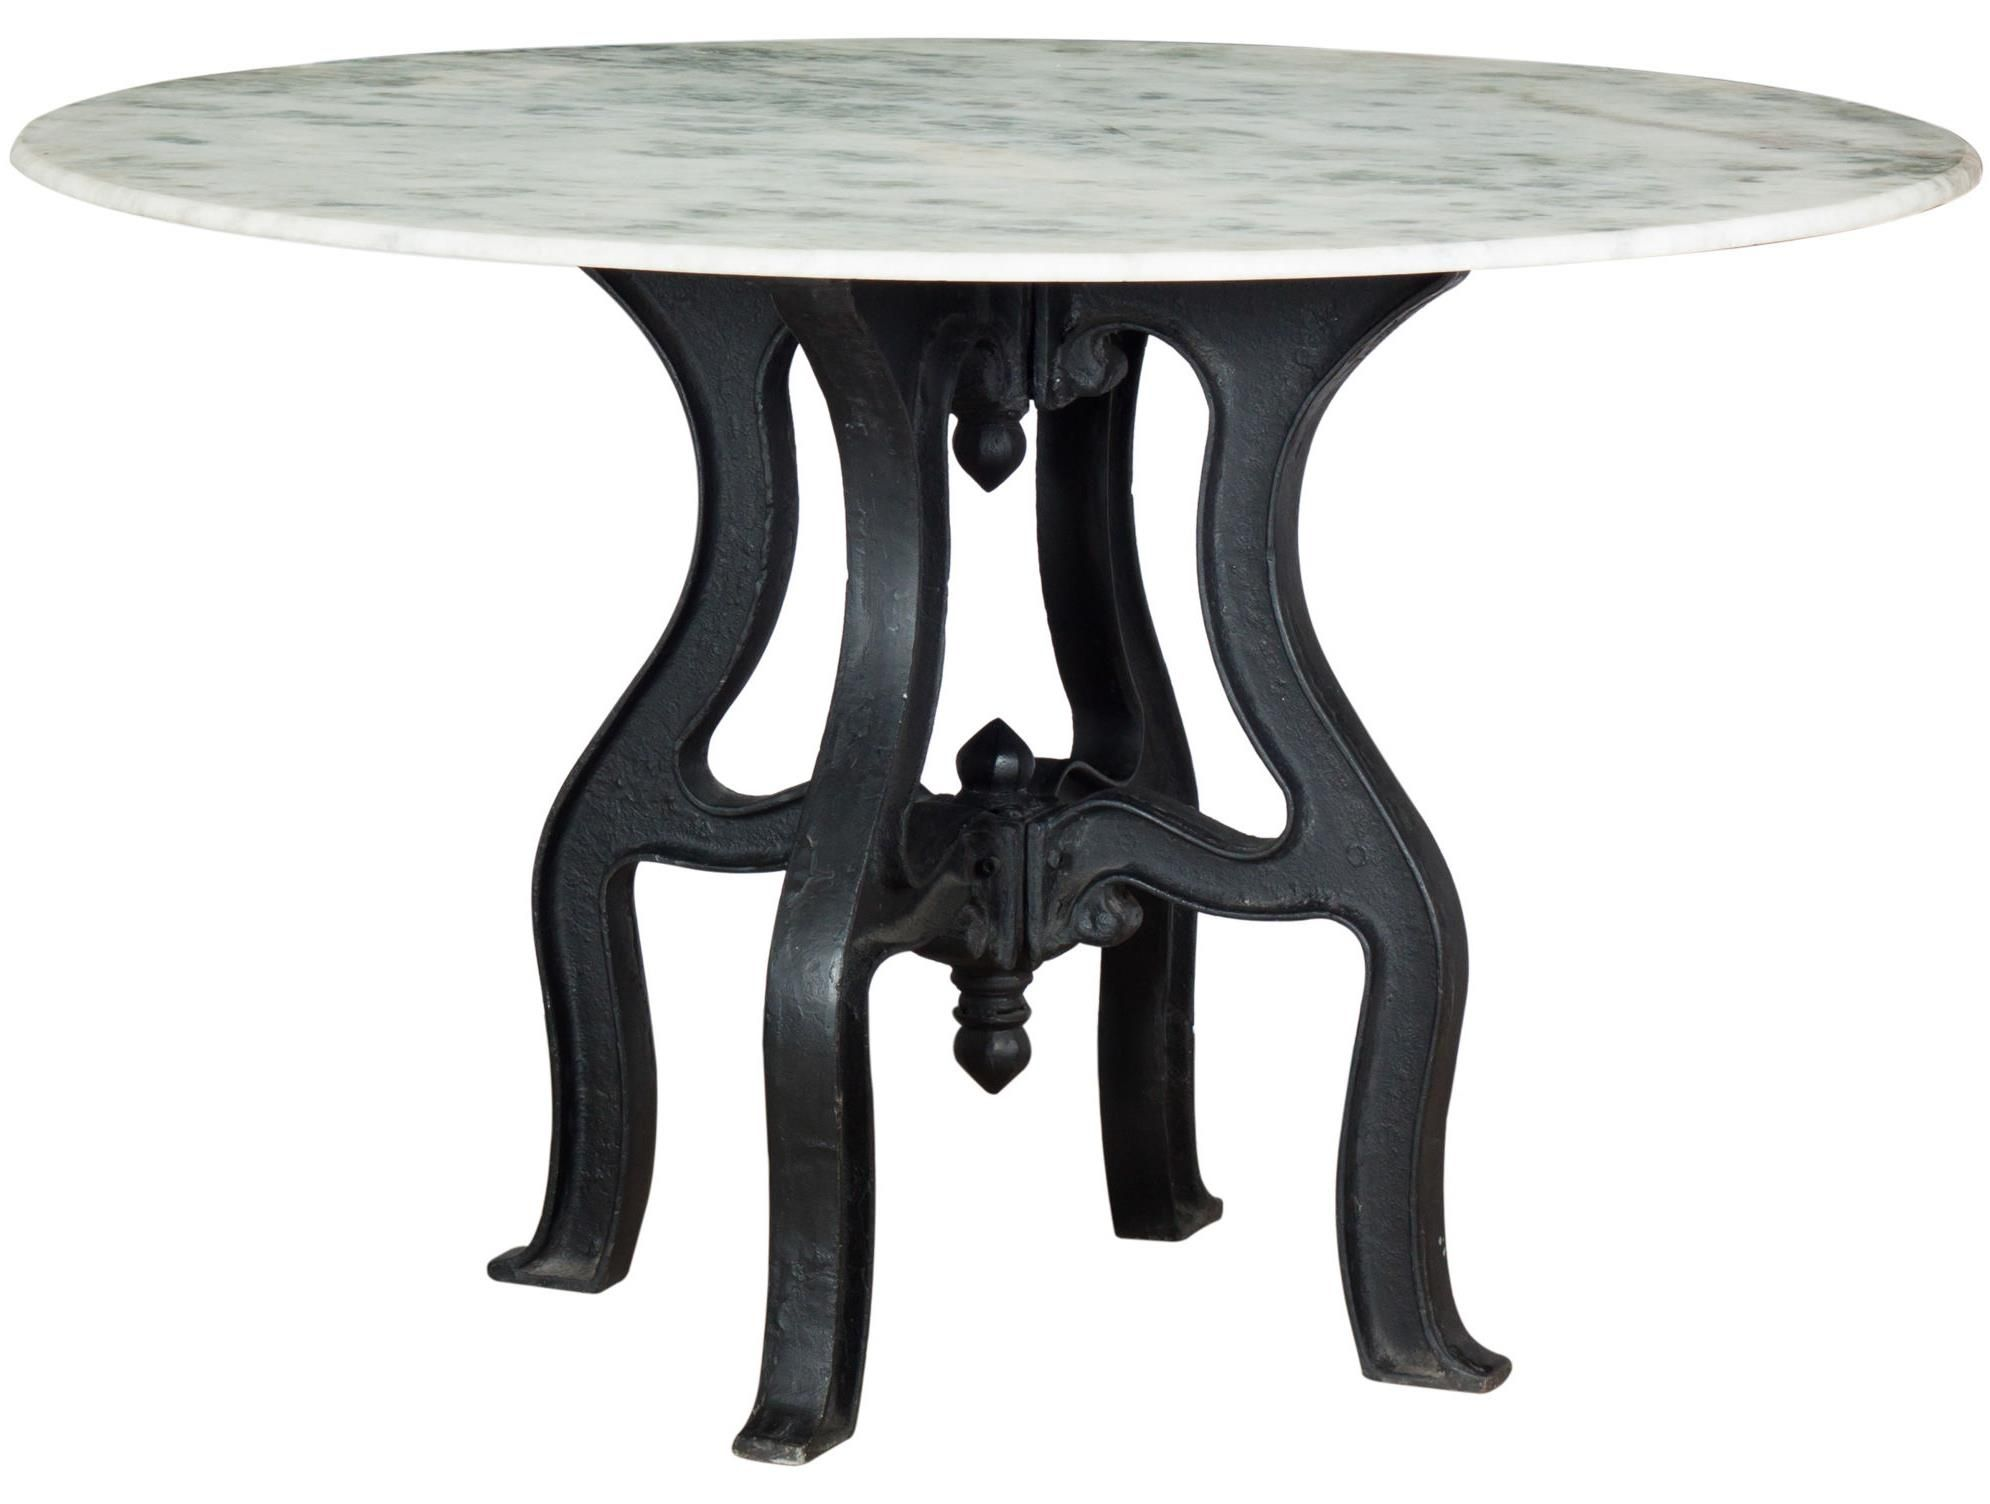 Rockwell Hobbs Round Dining Table By Interior Style Dining Table